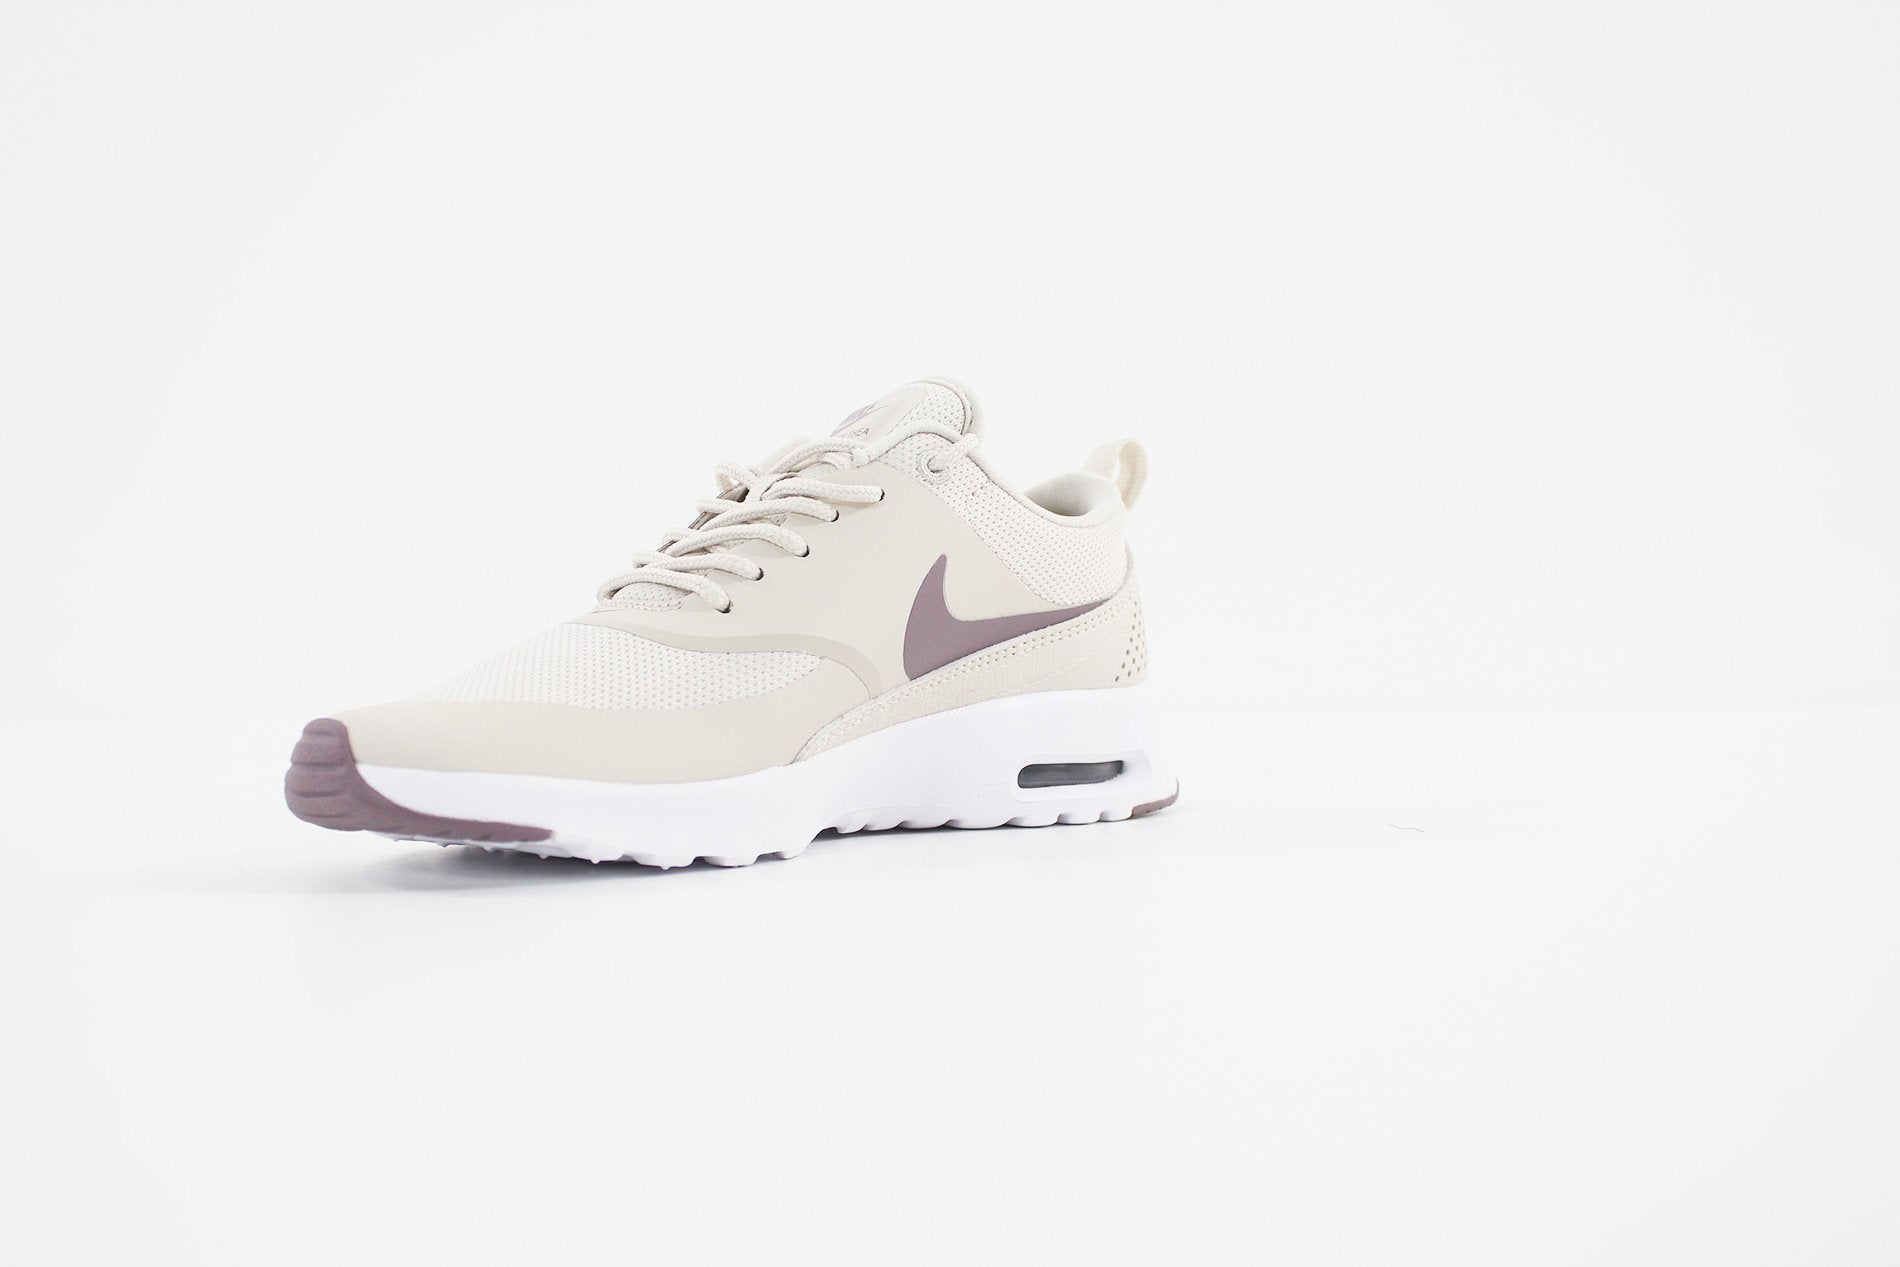 Nike - Women's Air Max Thea Shoe LT OREWOOD (BRN/TAUPE GREY) 599409-106